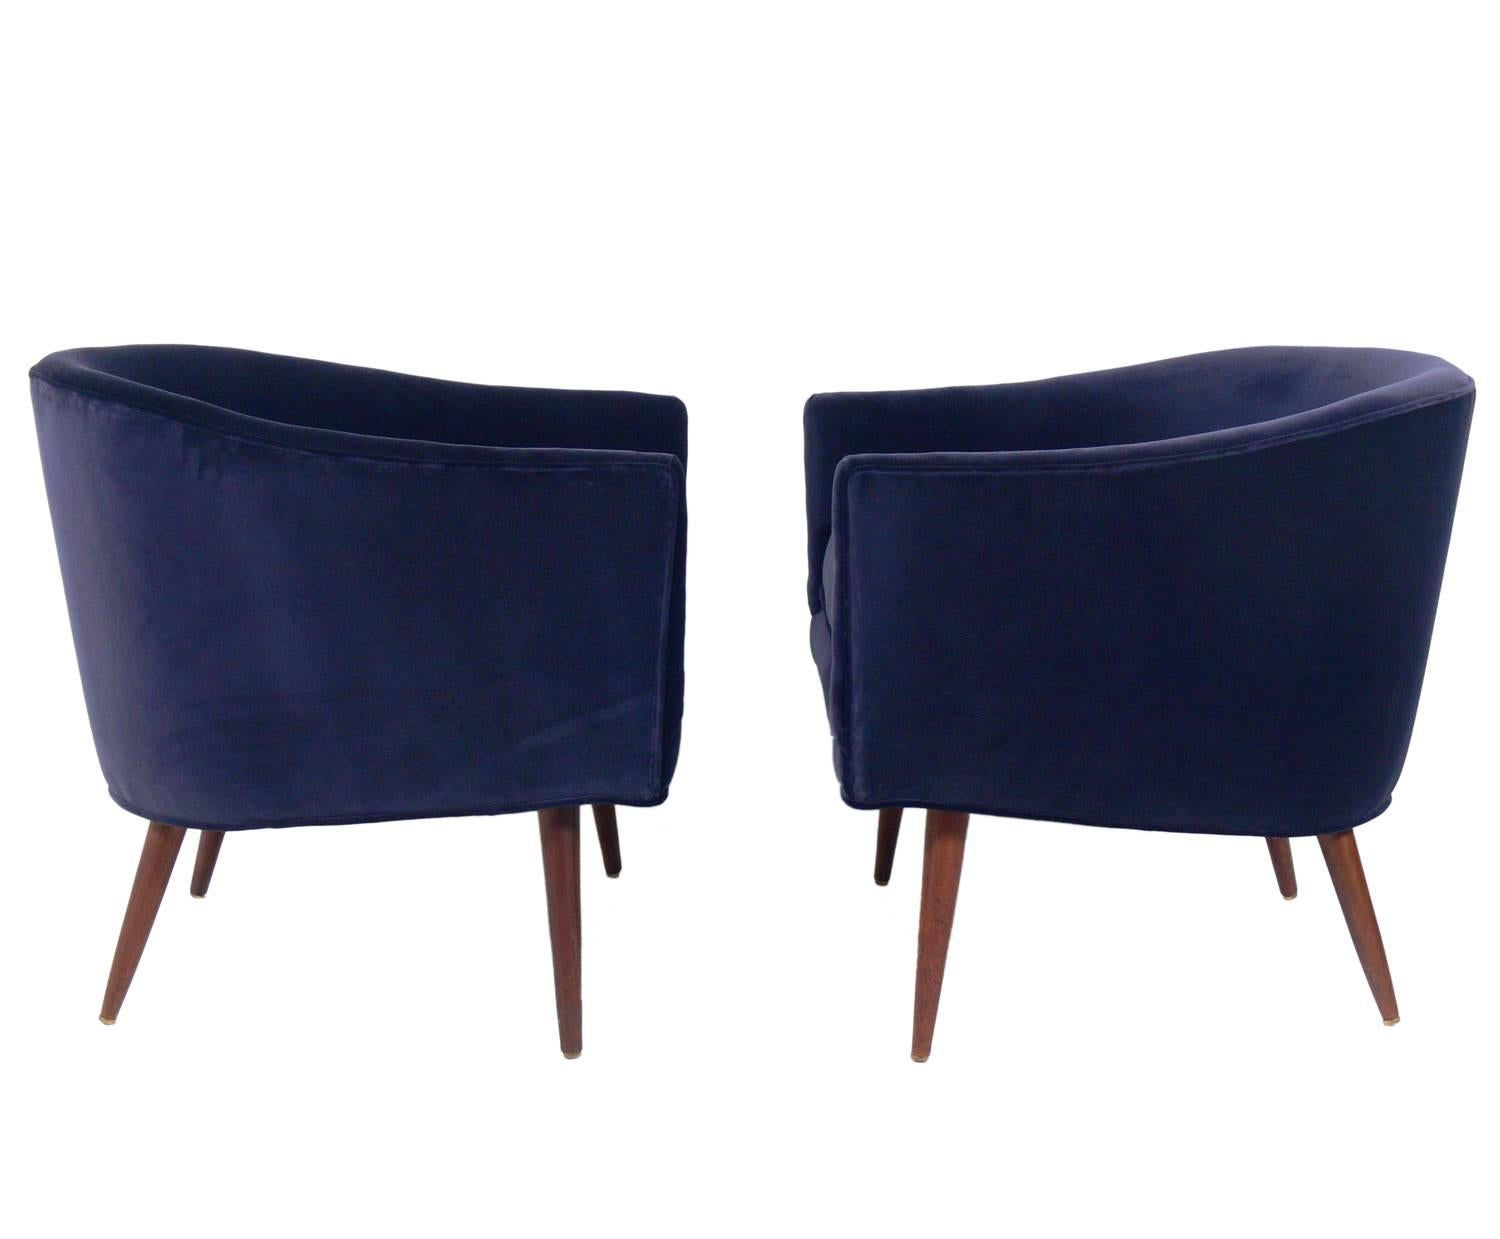 Pair of Curvaceous Midcentury Tub Chairs For Sale at 1stdibs